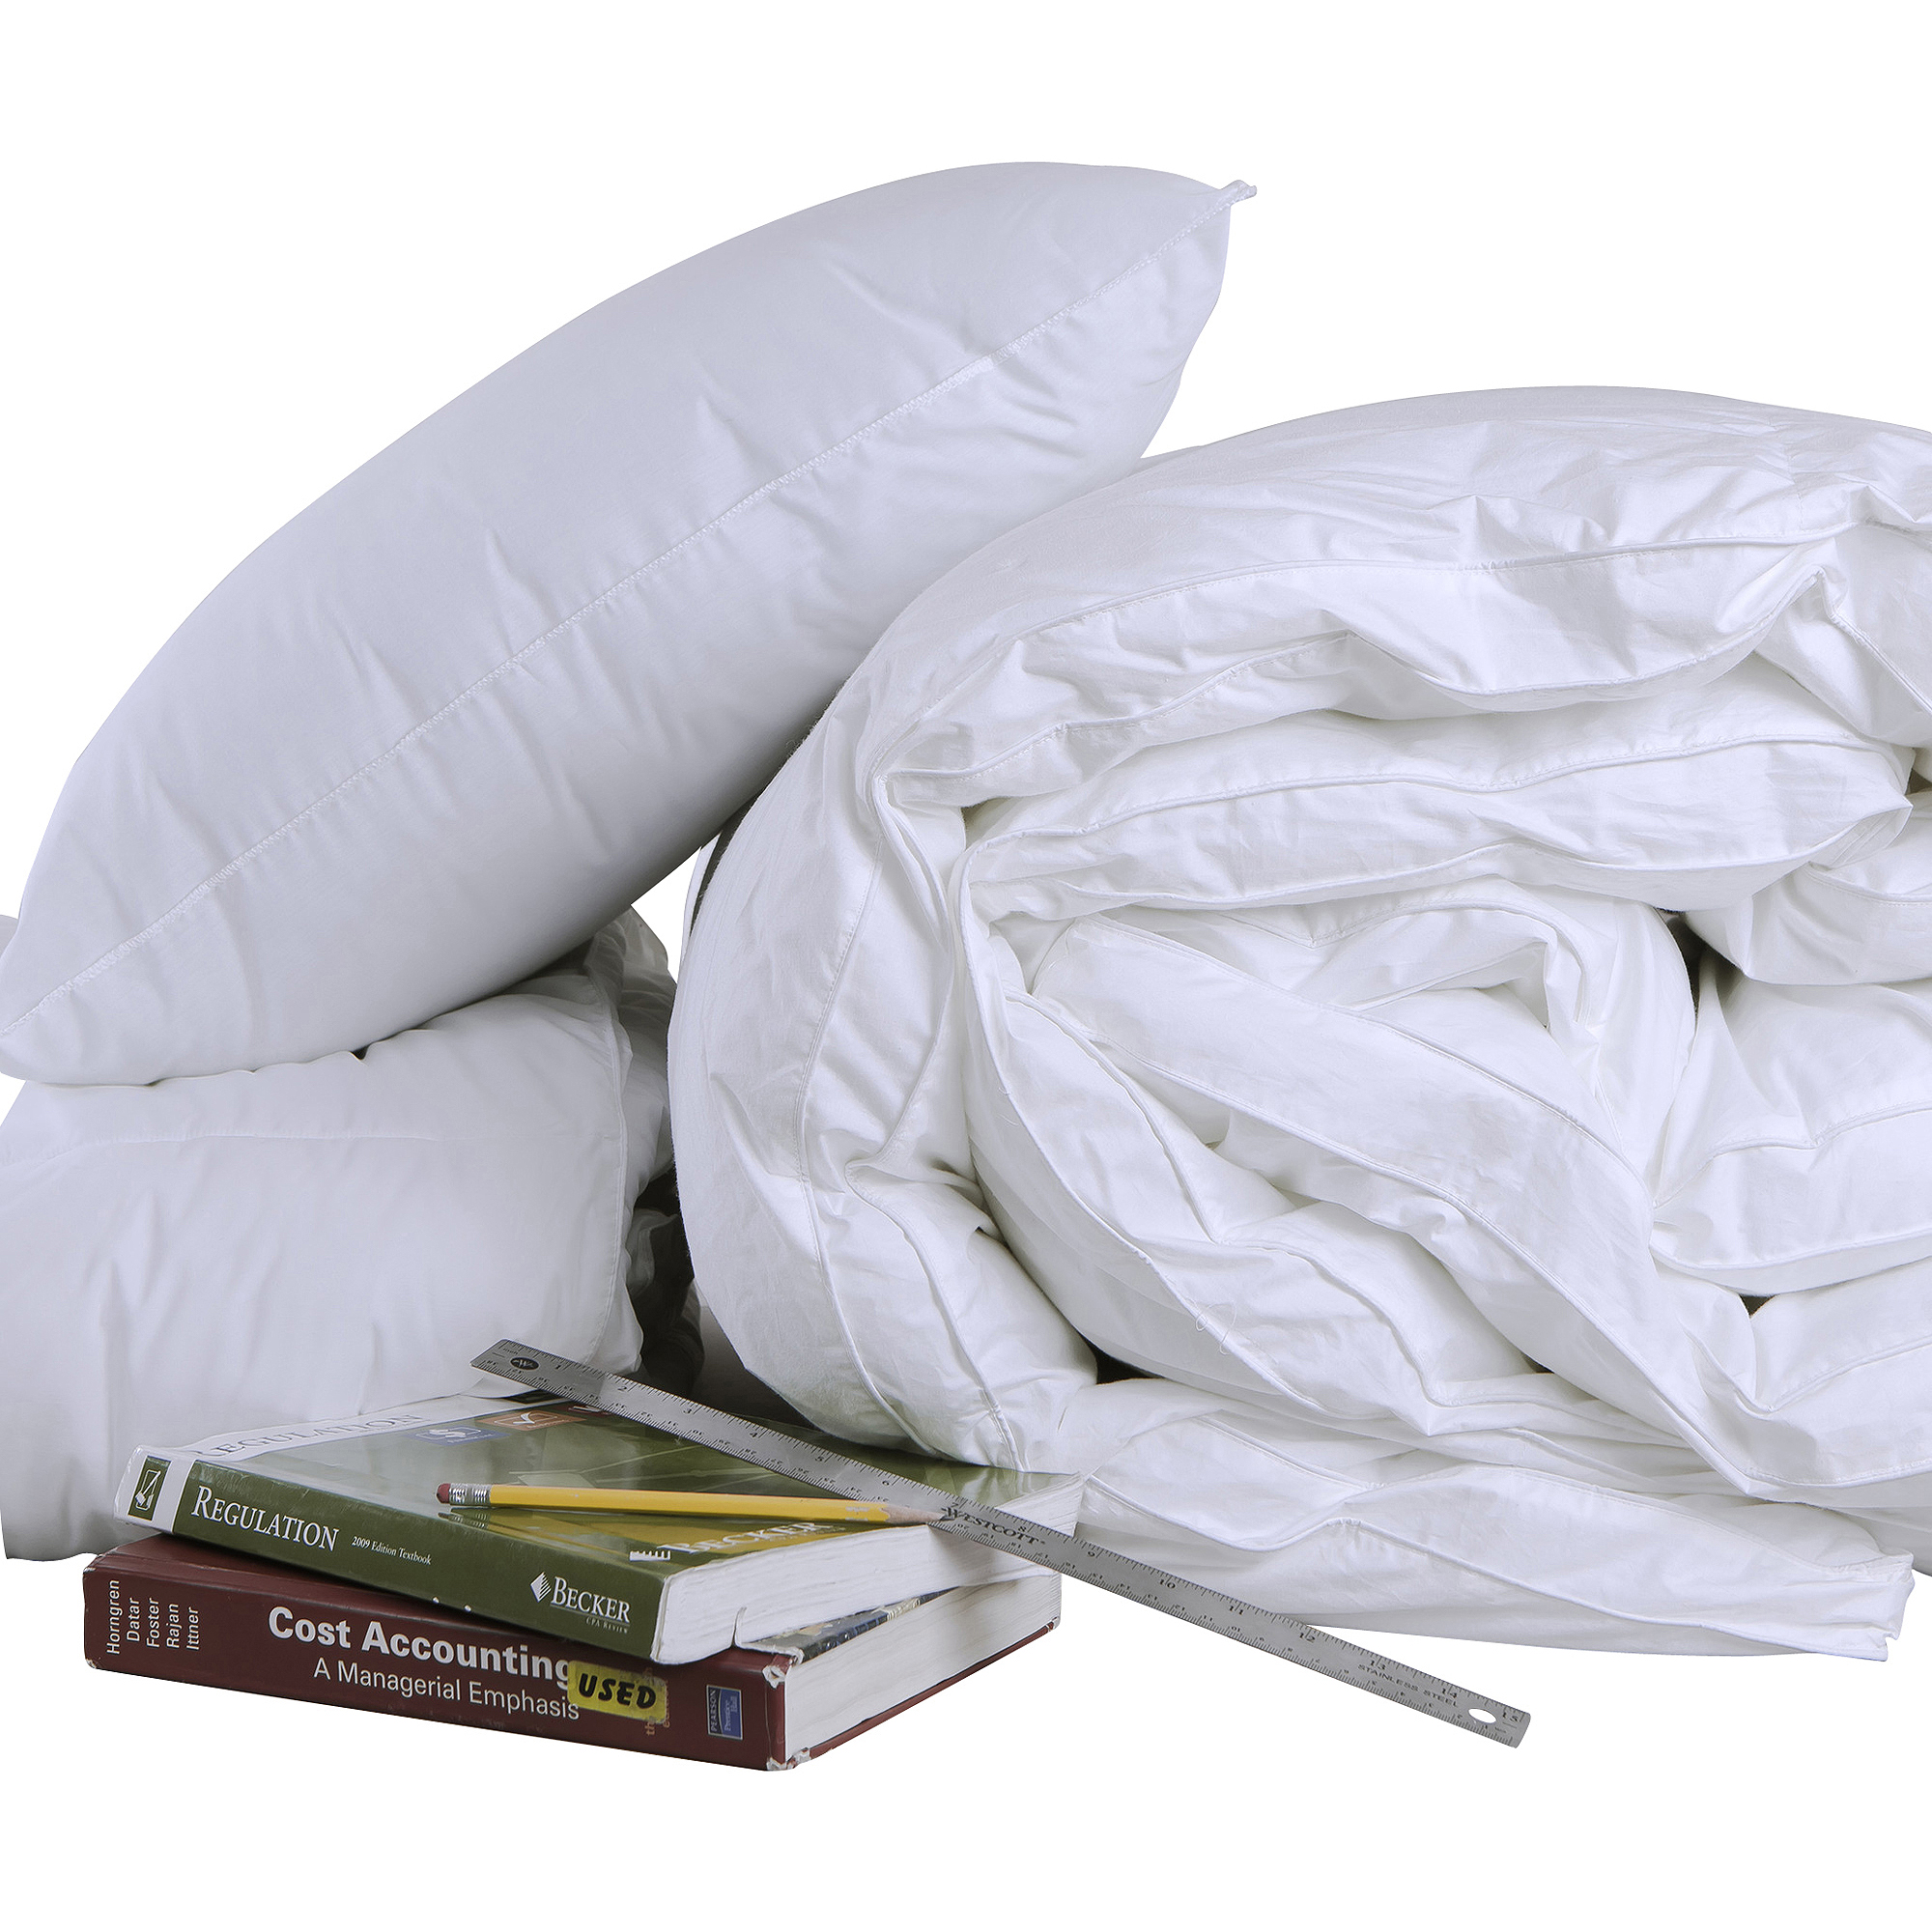 Cozy Classics Down Alternative Bedding Set Dorm Pack (Includes Comforter, Pillow, and Feather bed)